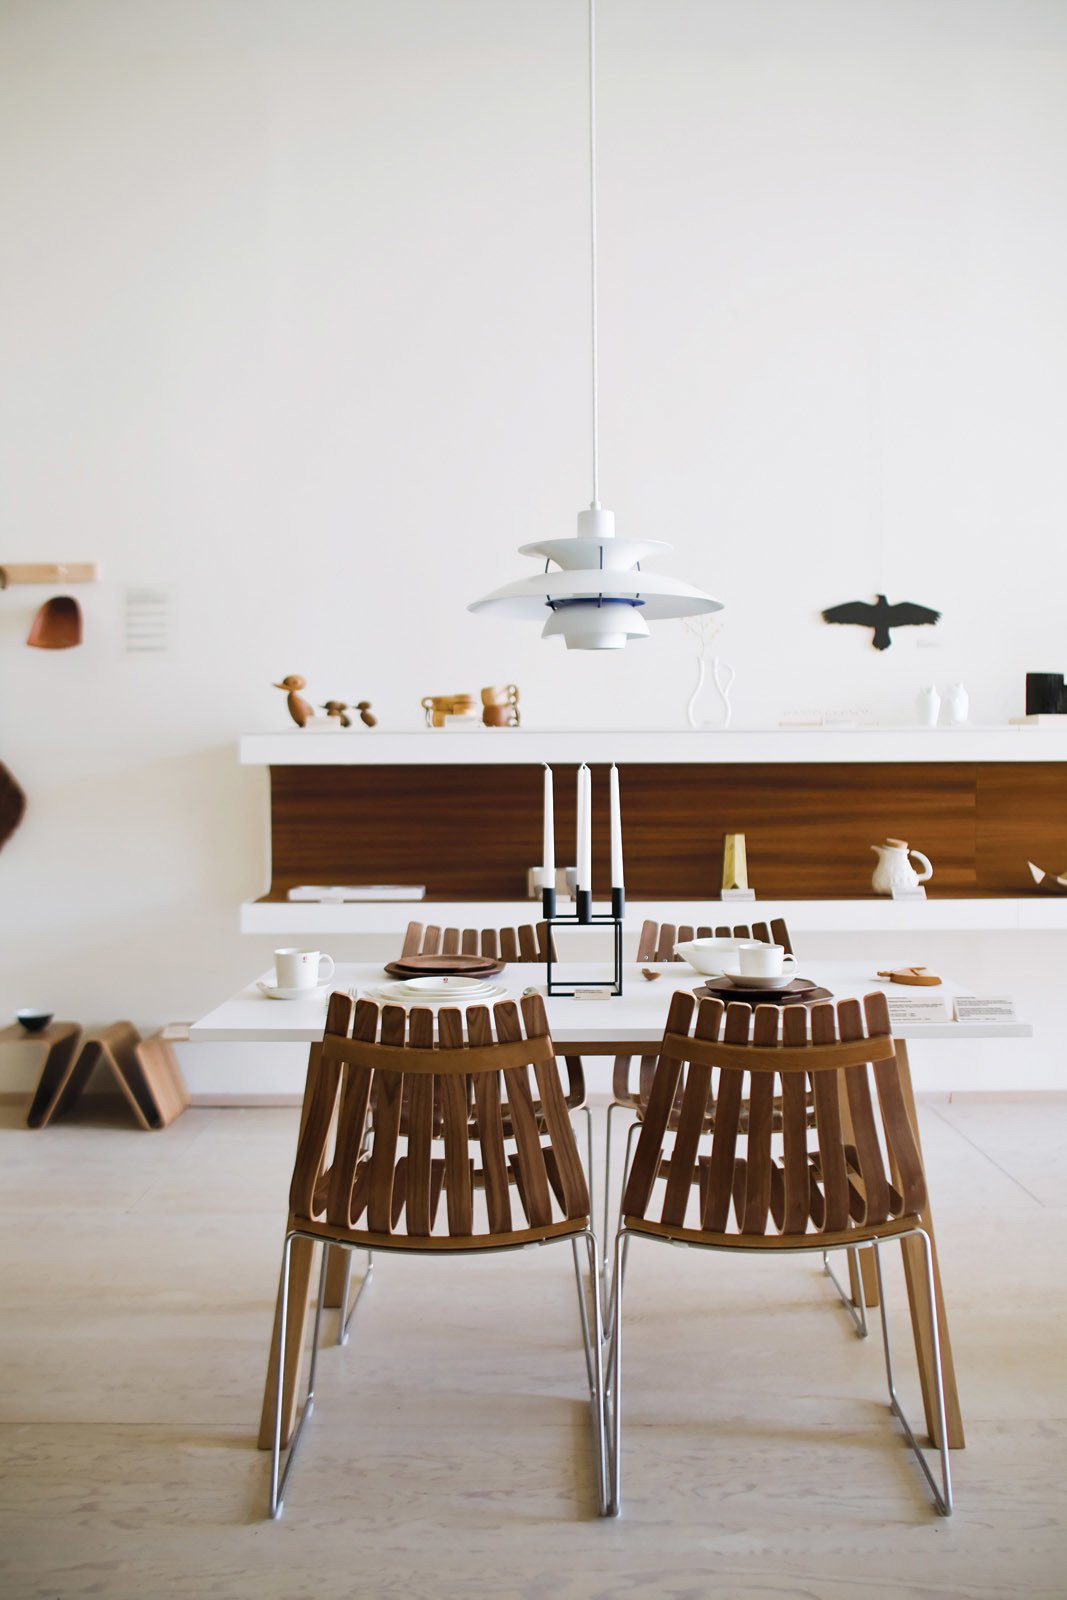 At the shop, Poul Henningsen's PH 5 lamp for Louis Poulsen hangs over the Sandra table by Thomas Sandell for Asplund and Scandia chairs by Hans Brattrud for Fjordfiesta (top left).  In the Home